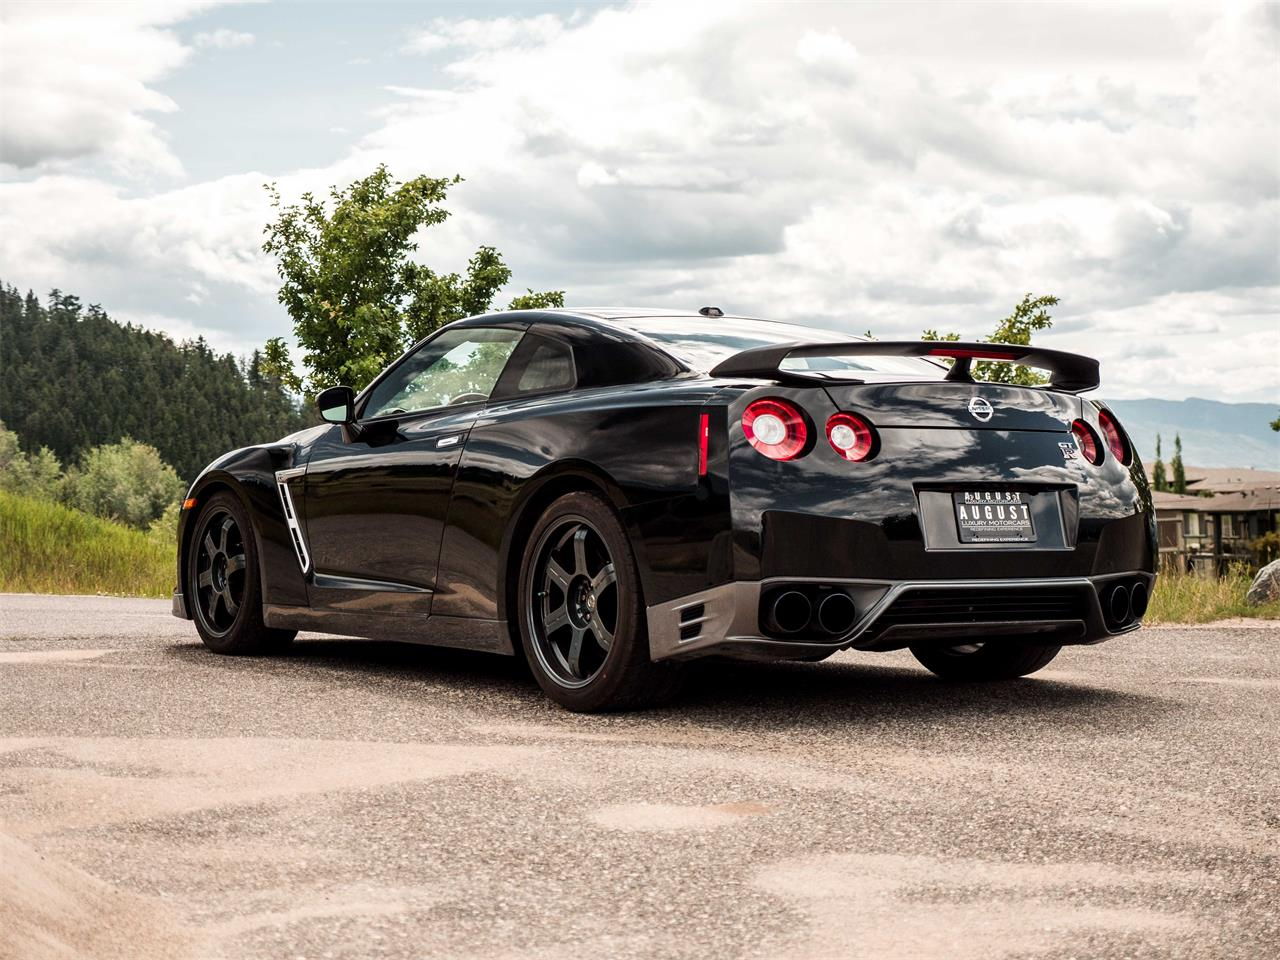 2016 Nissan GT-R (CC-1362240) for sale in Kelowna, British Columbia